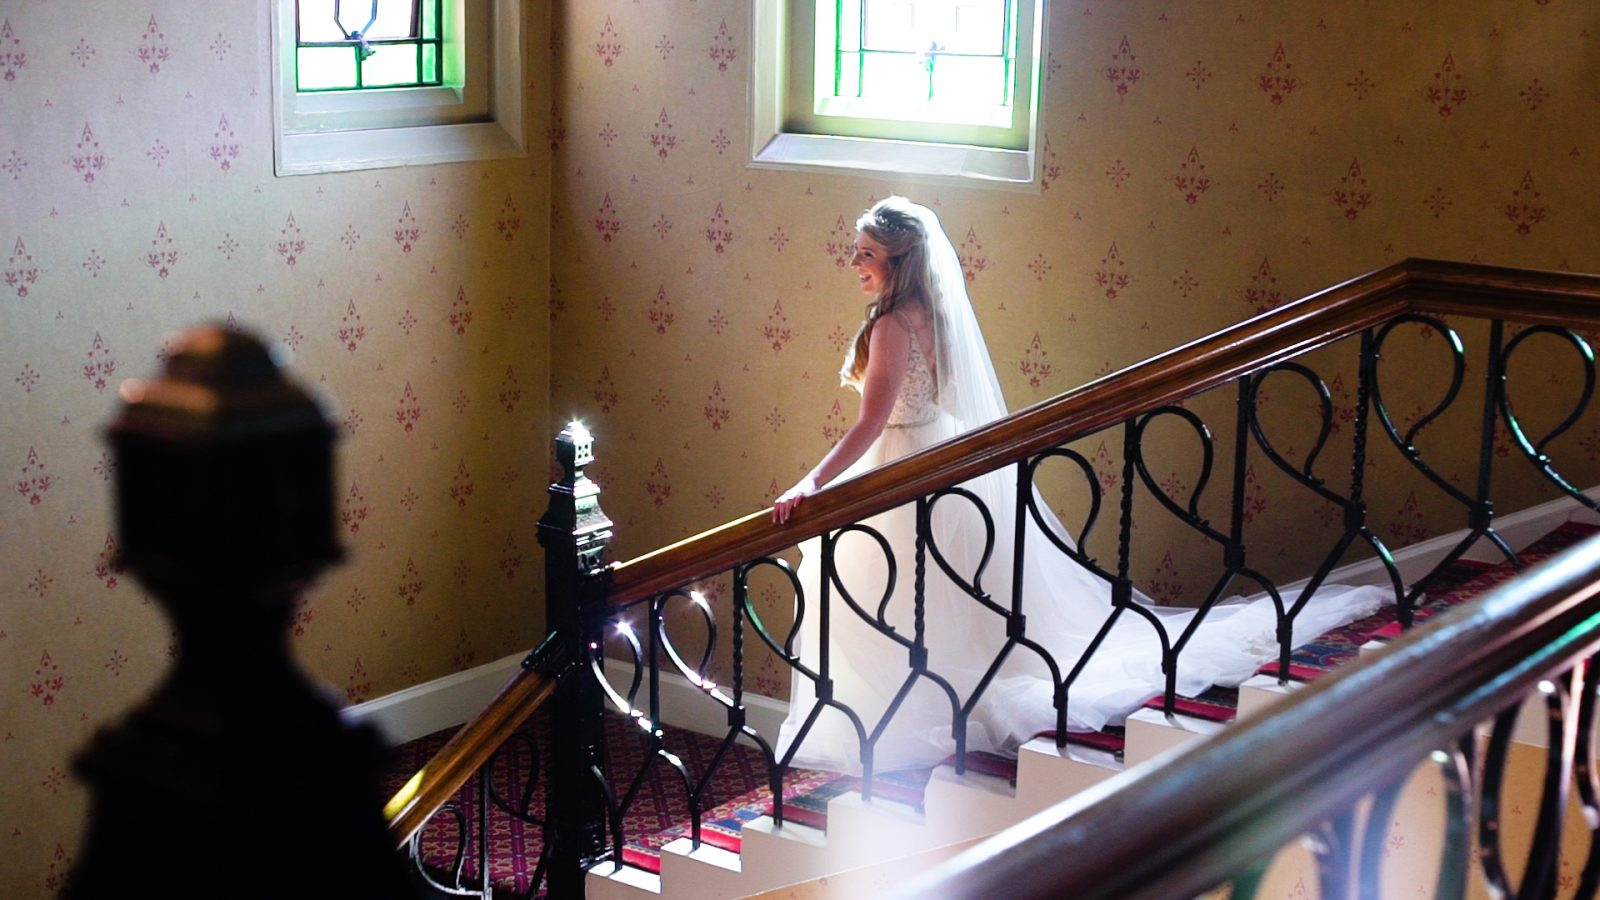 A bride walks down a grand staircase with light flooding in